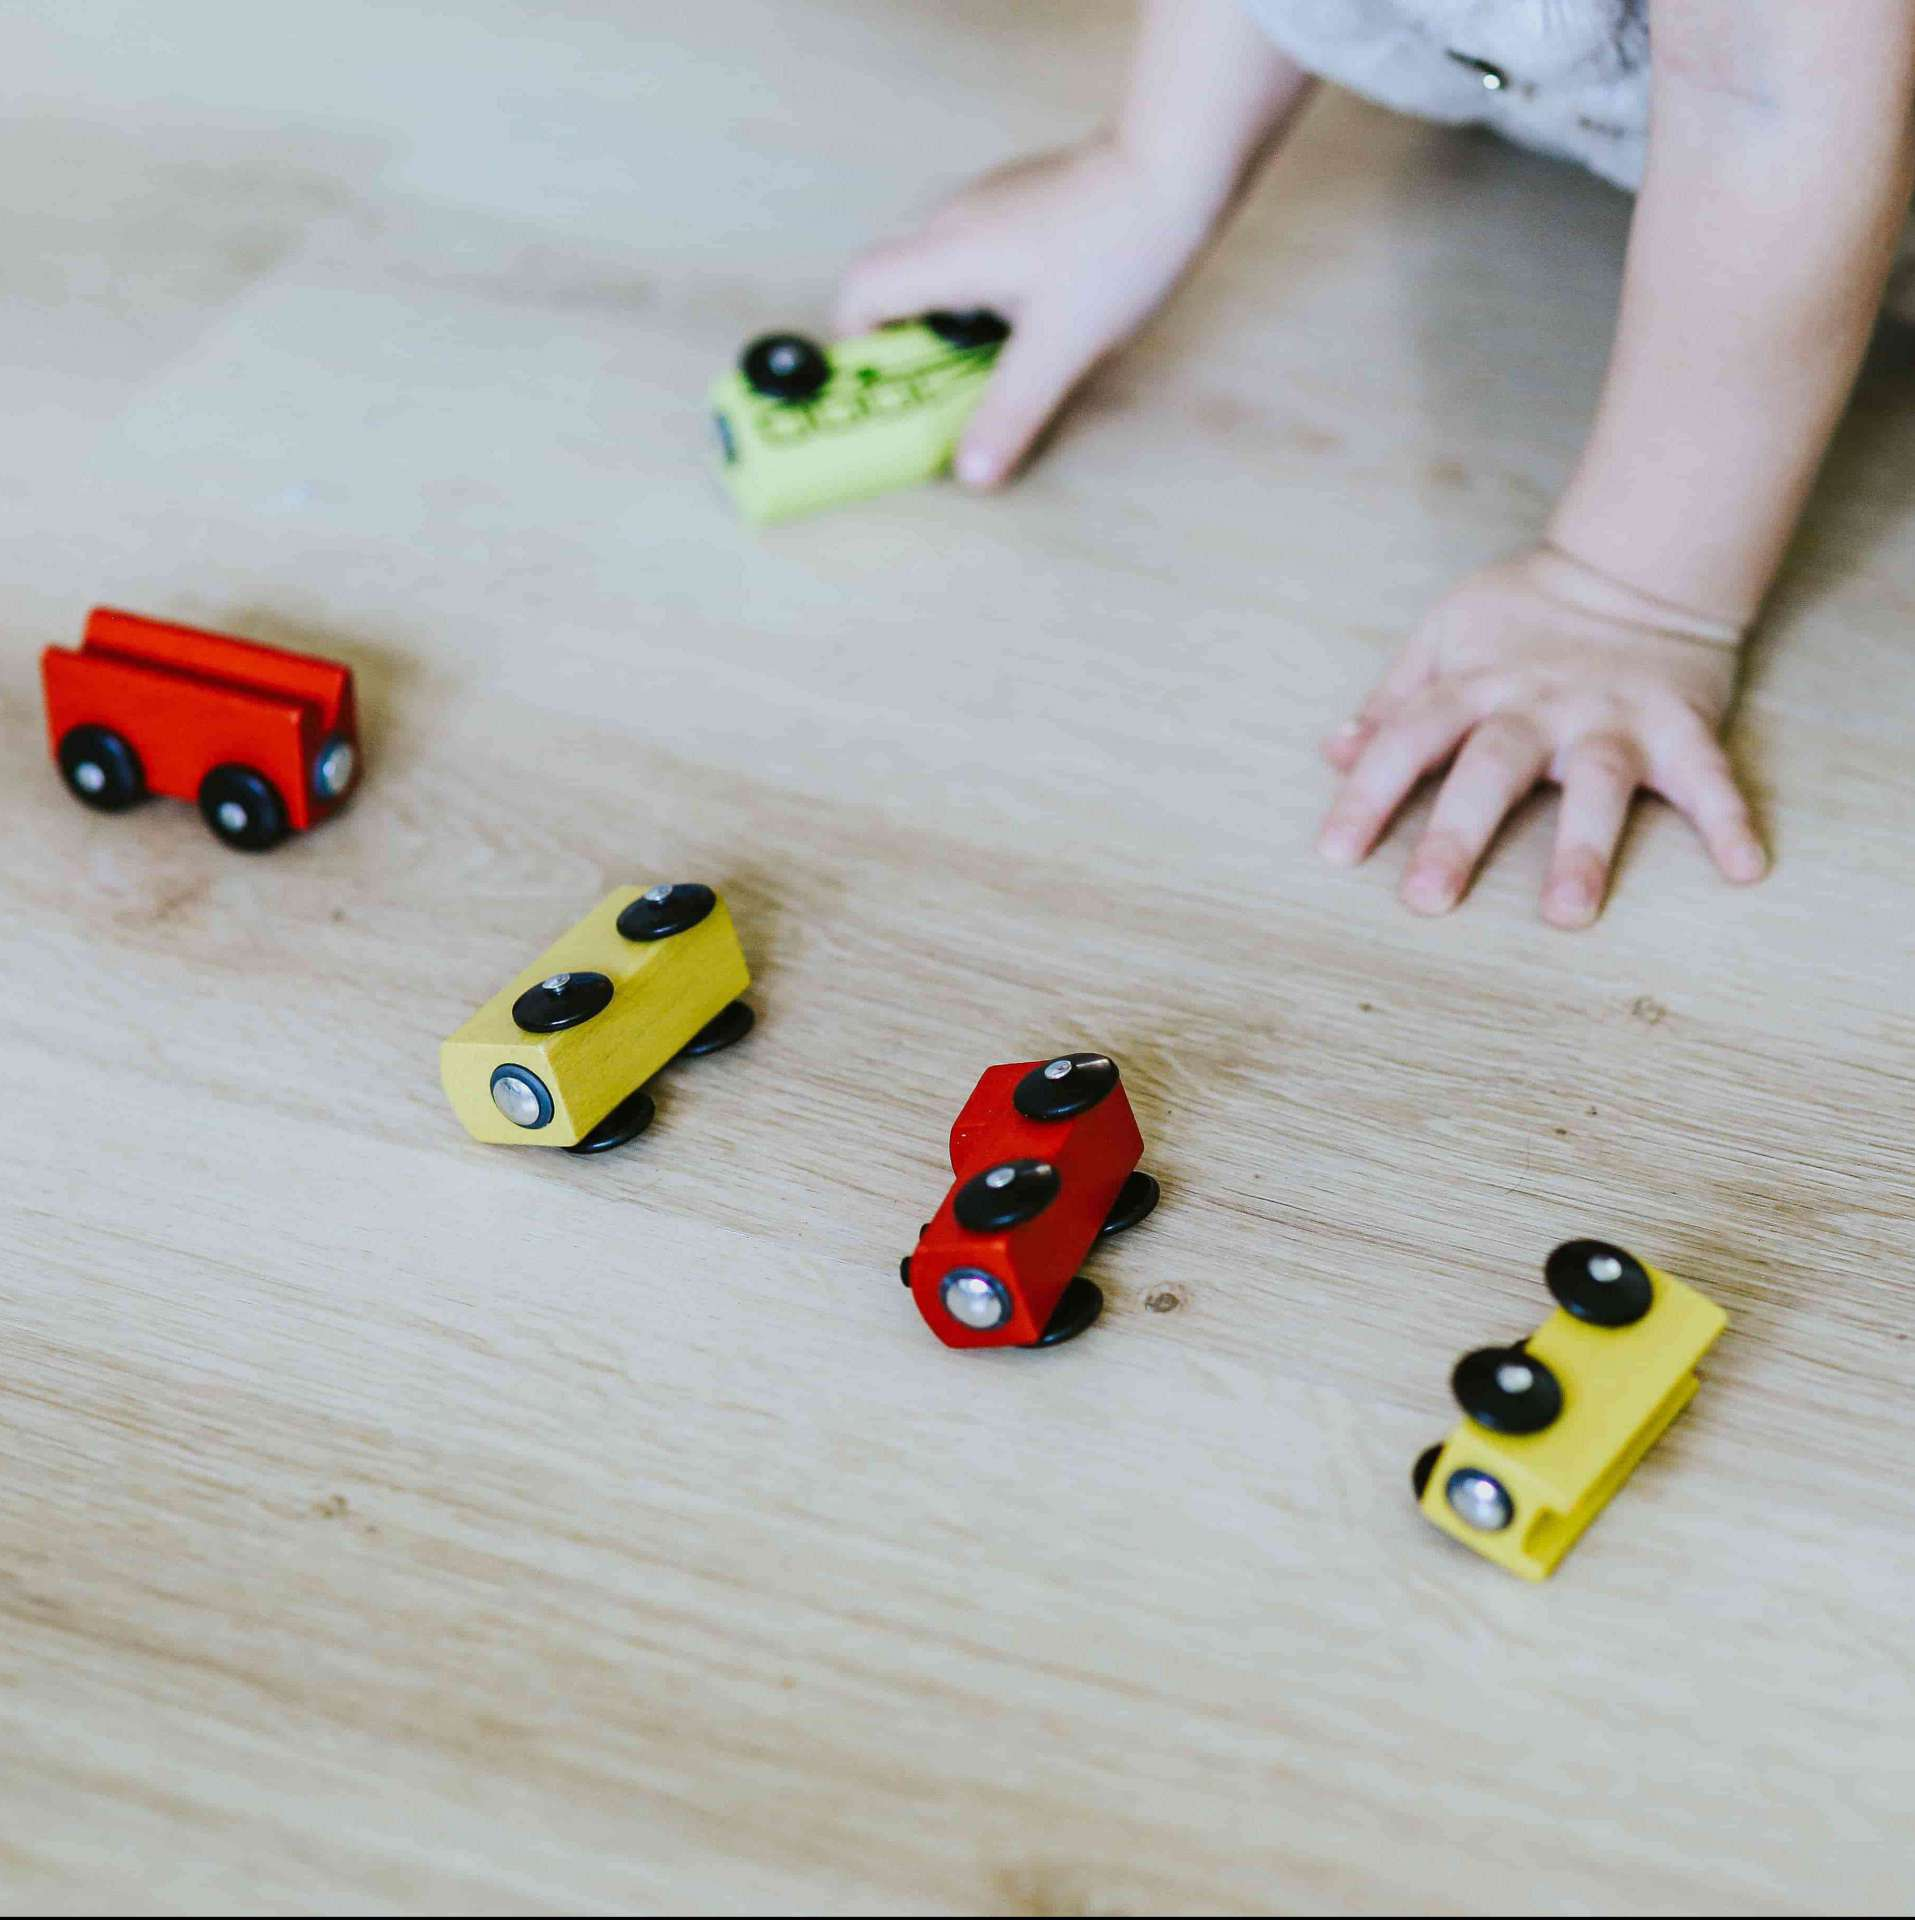 kid playing with wooden cars on hardwood floor